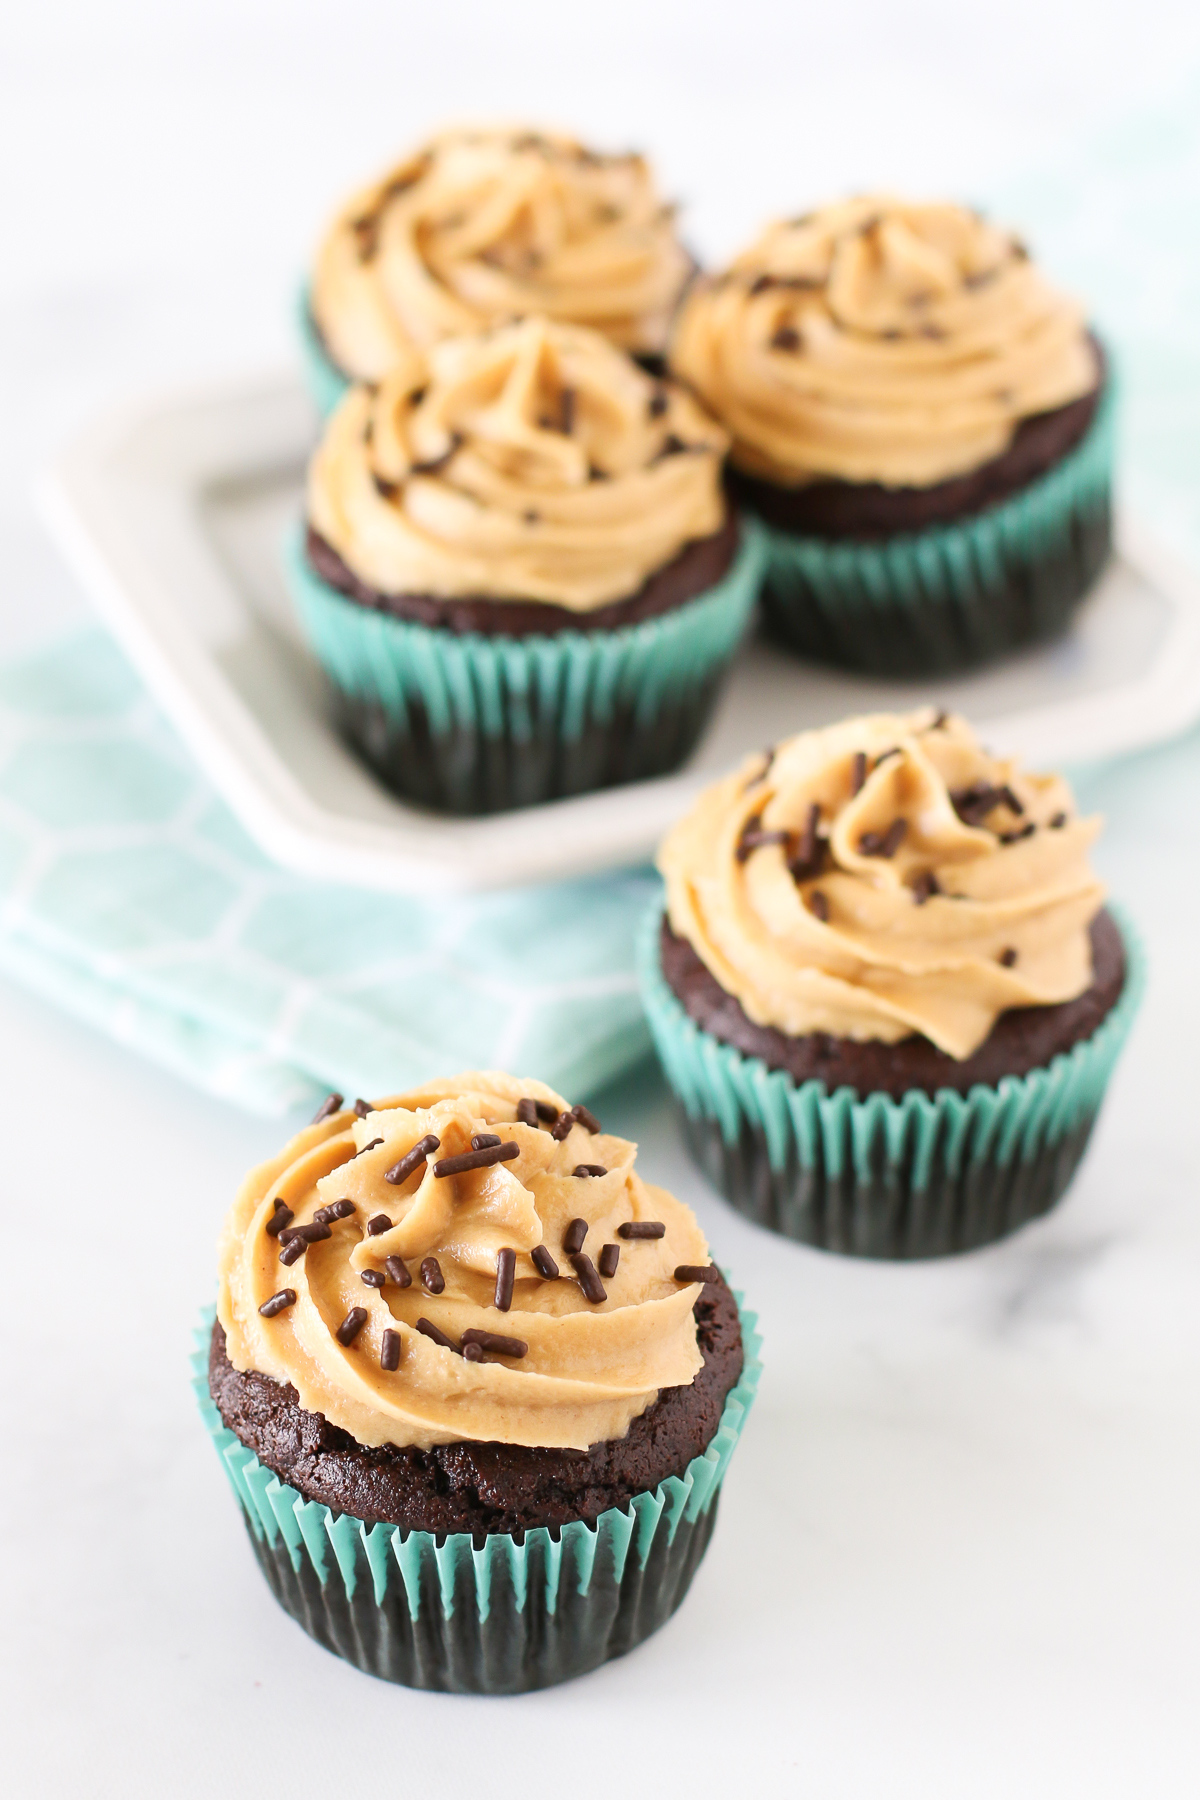 Gluten Free Vegan Chocolate Peanut Butter Cupcakes. Fluffy chocolate cupcakes with a creamy, dreamy peanut butter frosting.